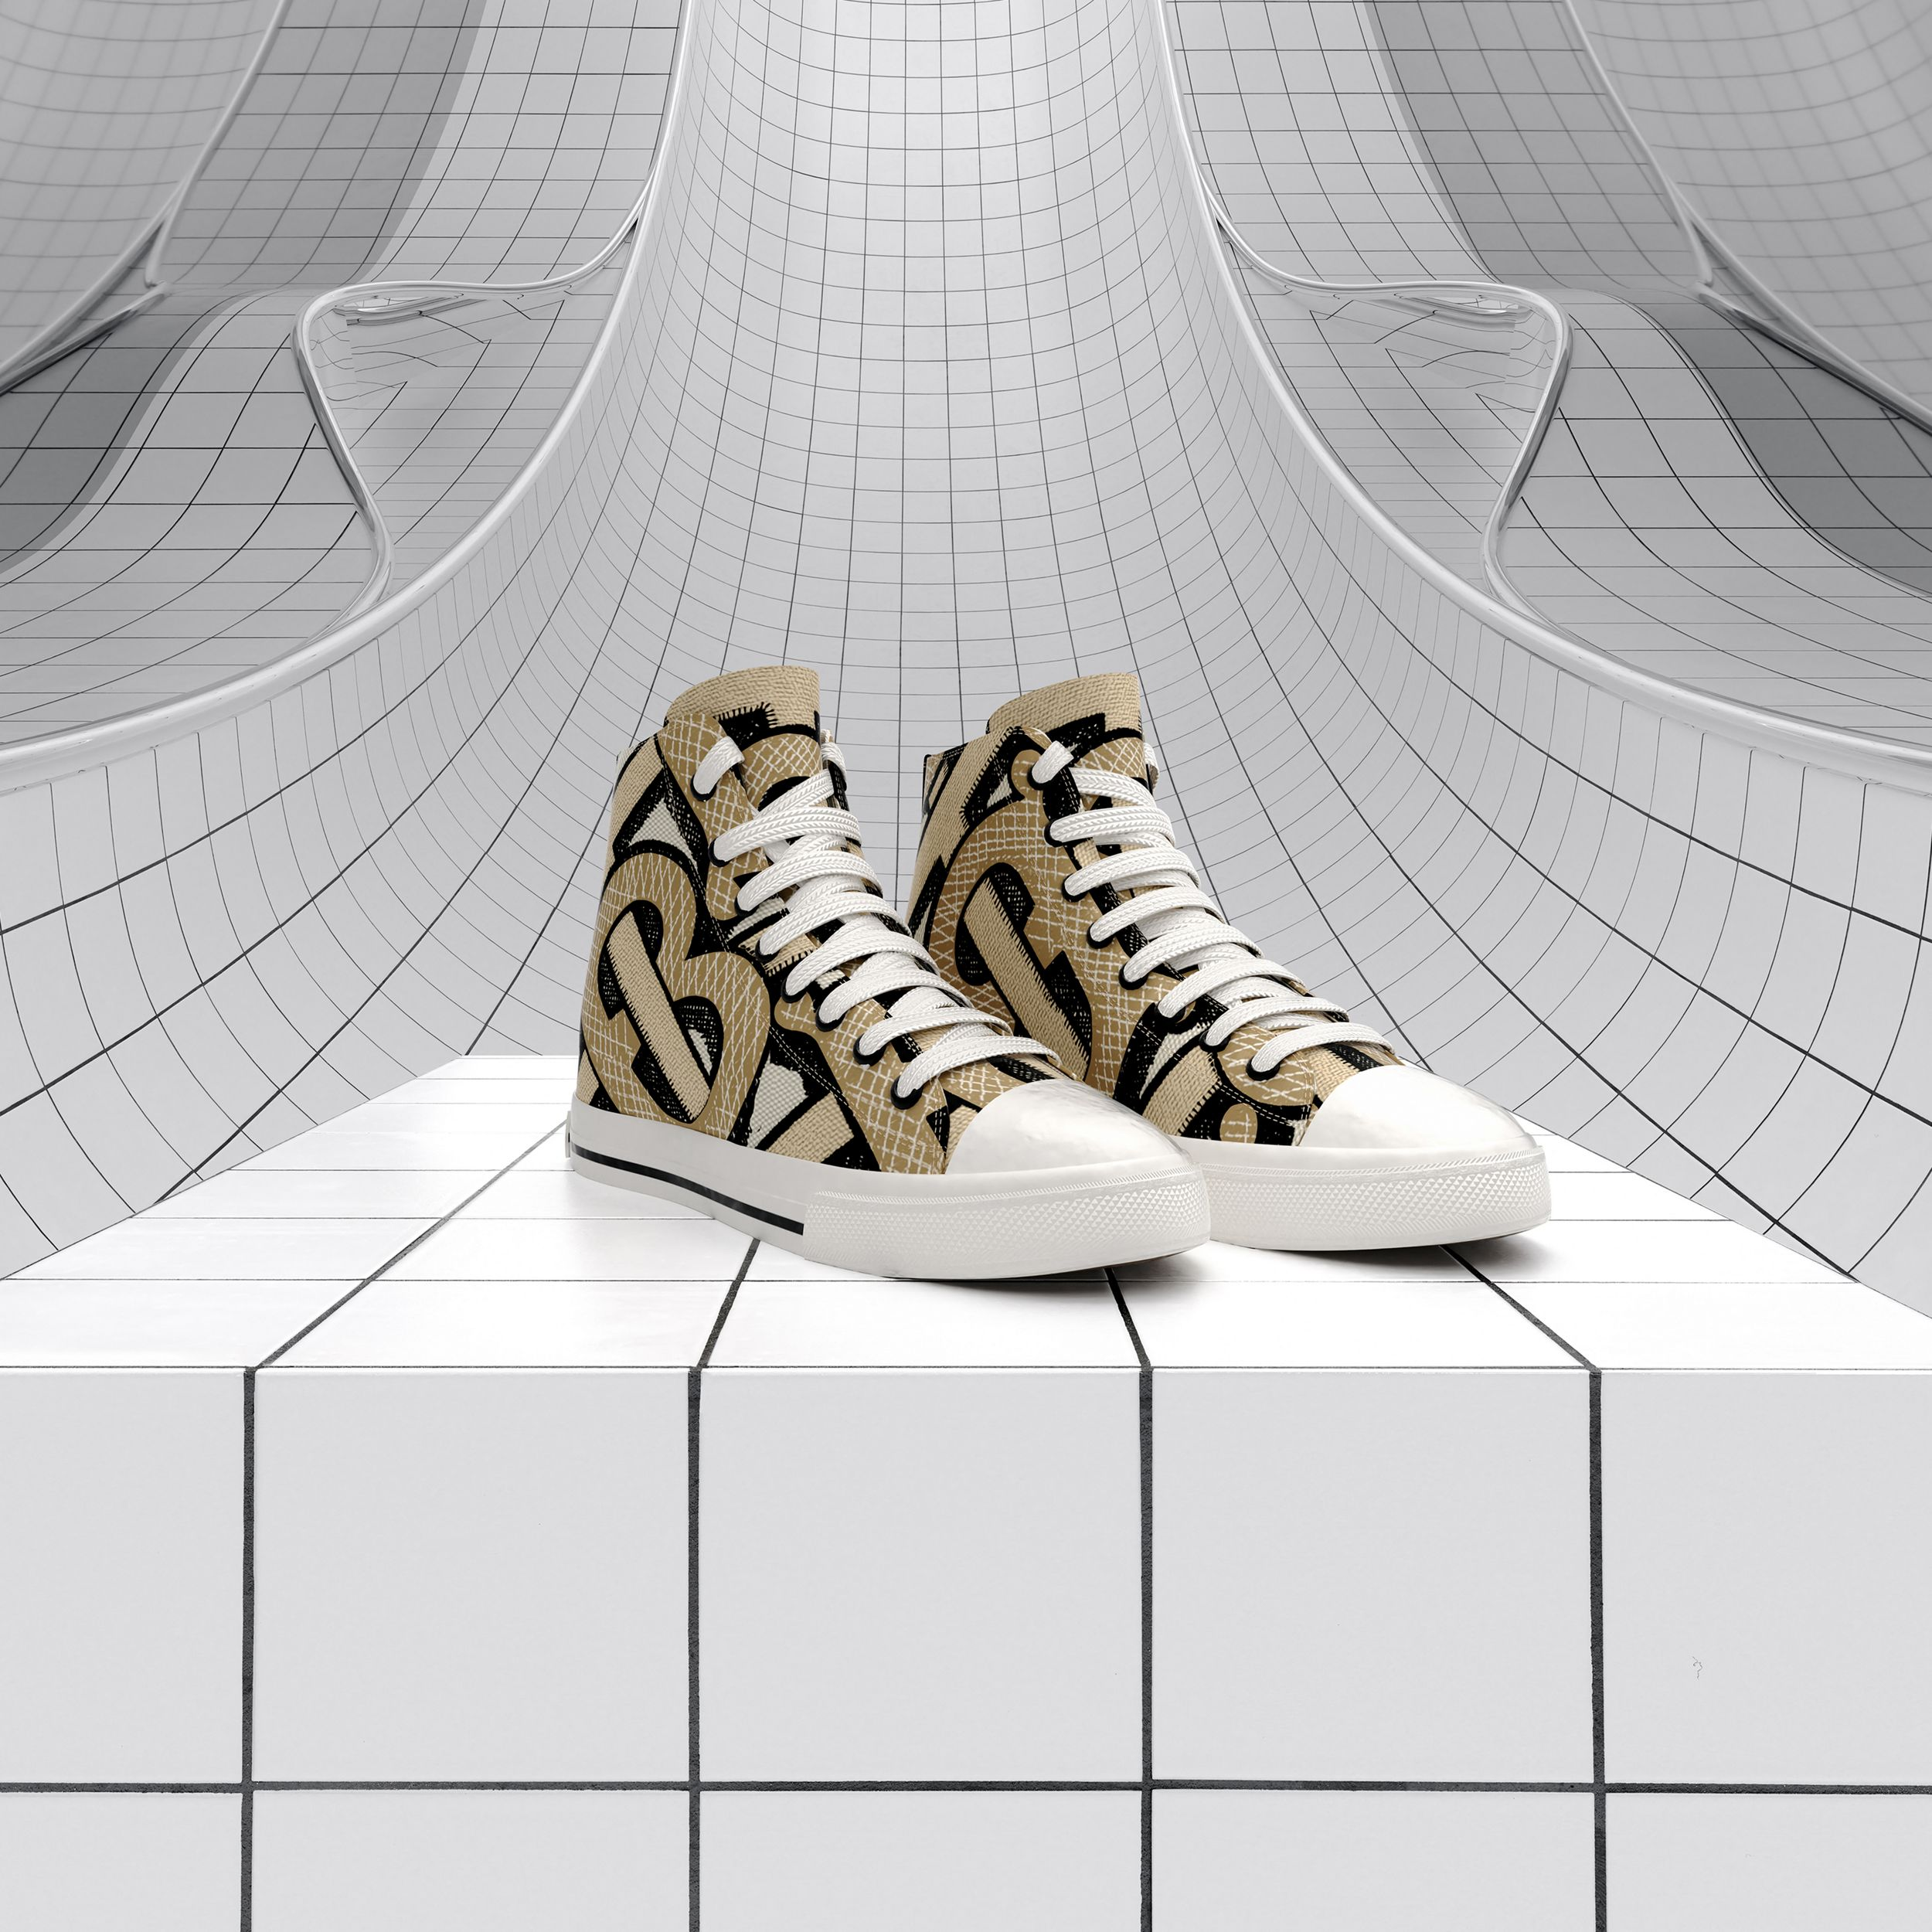 Monogram Print Cotton Canvas High-top Sneakers in Dark Beige - Women | Burberry - 2